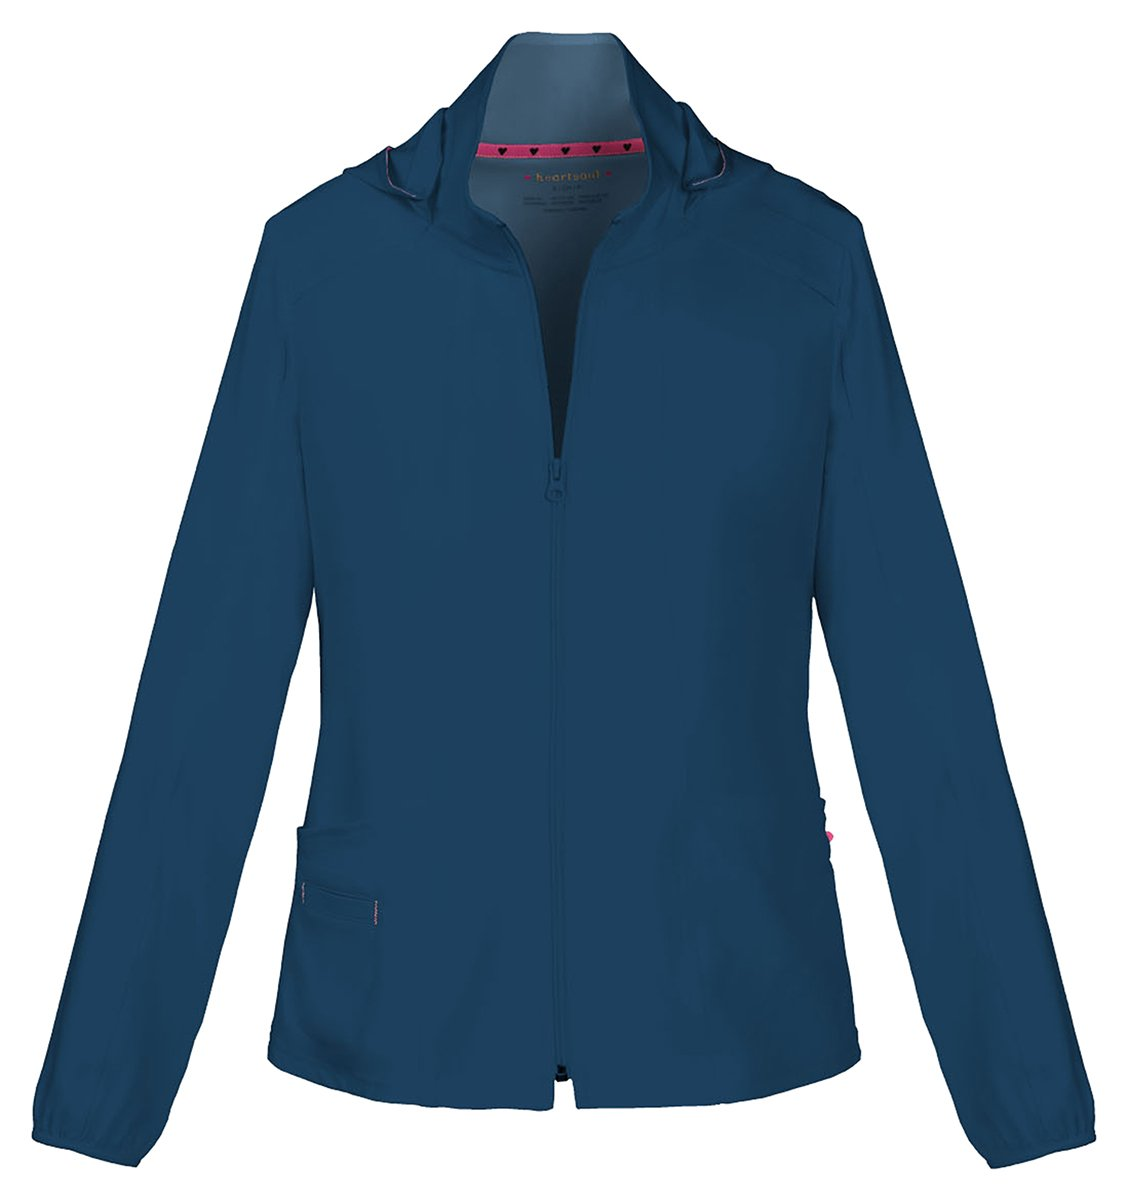 HeartSoul Women's Warm-Up Detachable Hooded Jacket_Navy_Large,20310